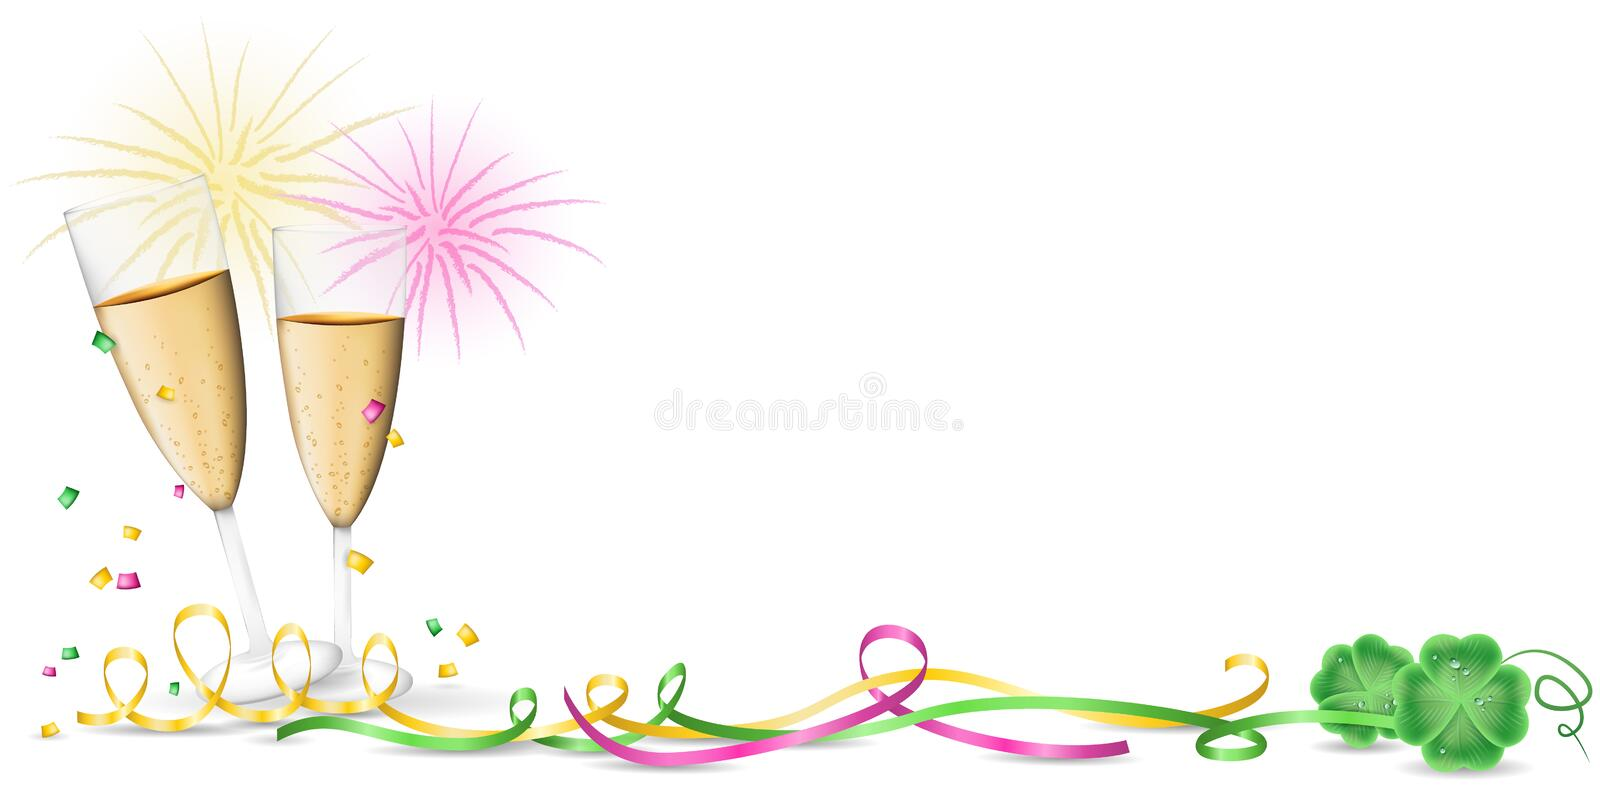 Happy new year vestor banner vector illustration